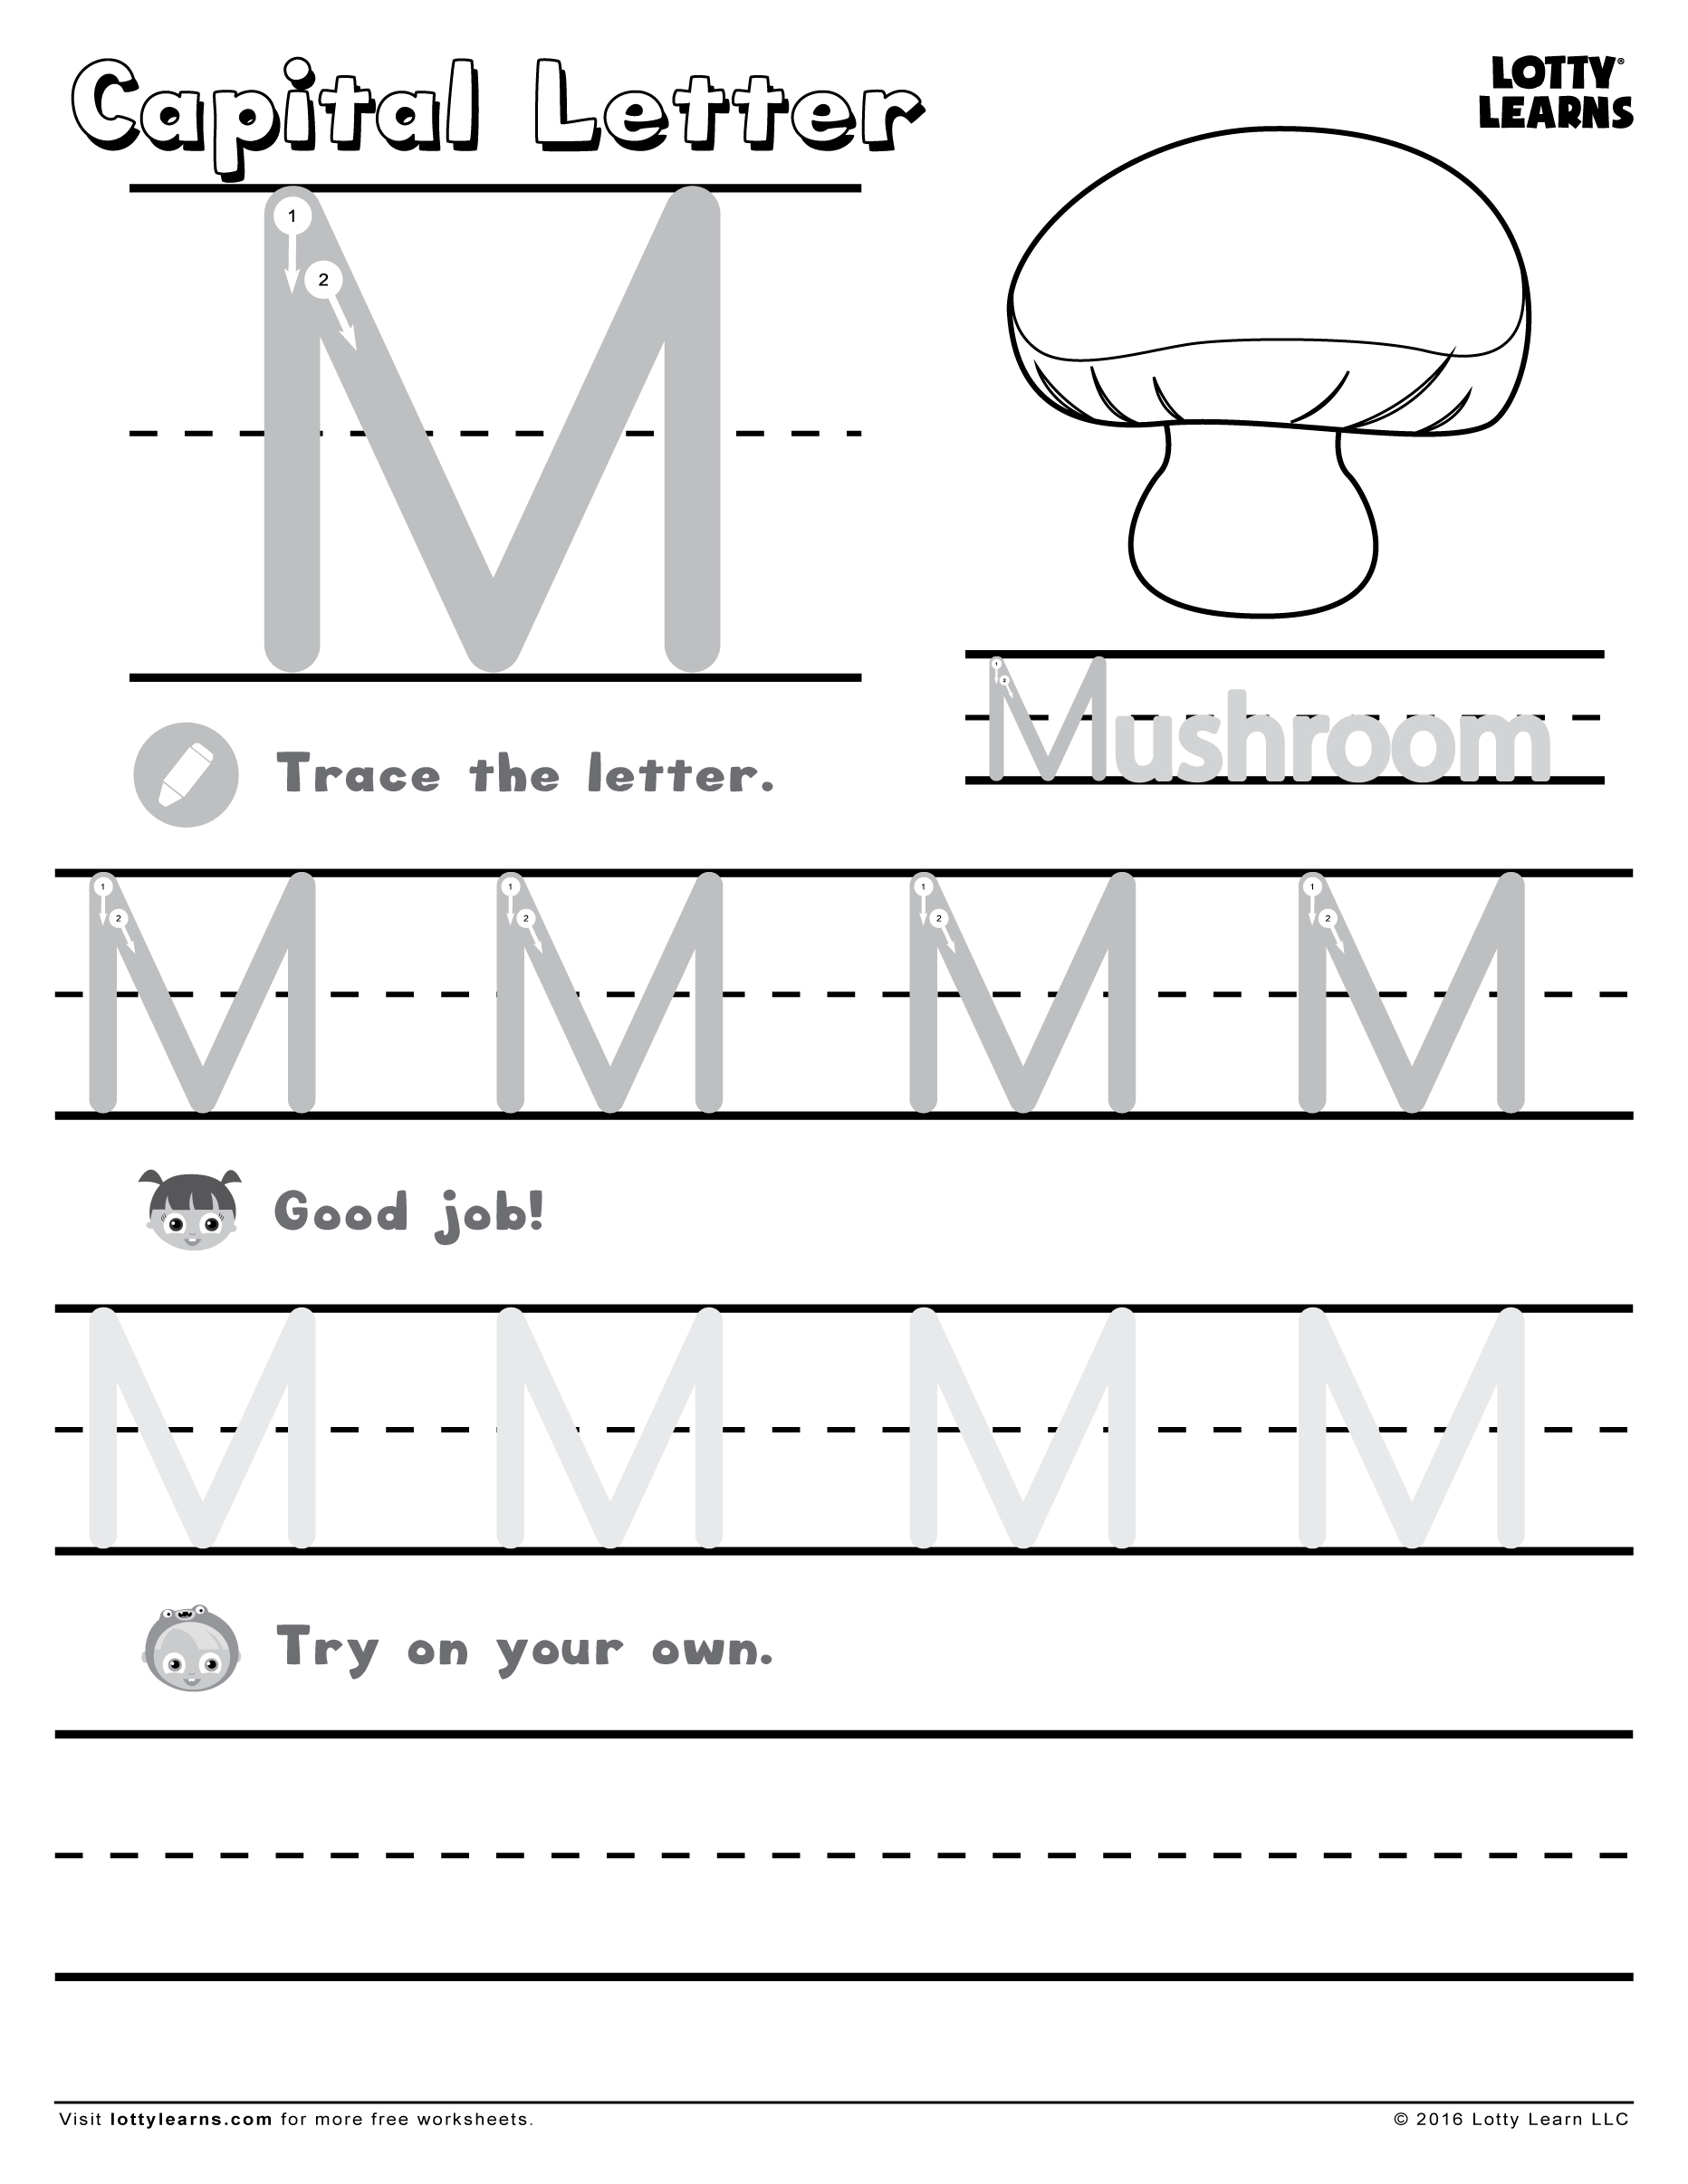 Capital Letter M Lotty Learns Learning To Write Alphabet Practice Sheets Capital Letters [ 2412 x 1864 Pixel ]